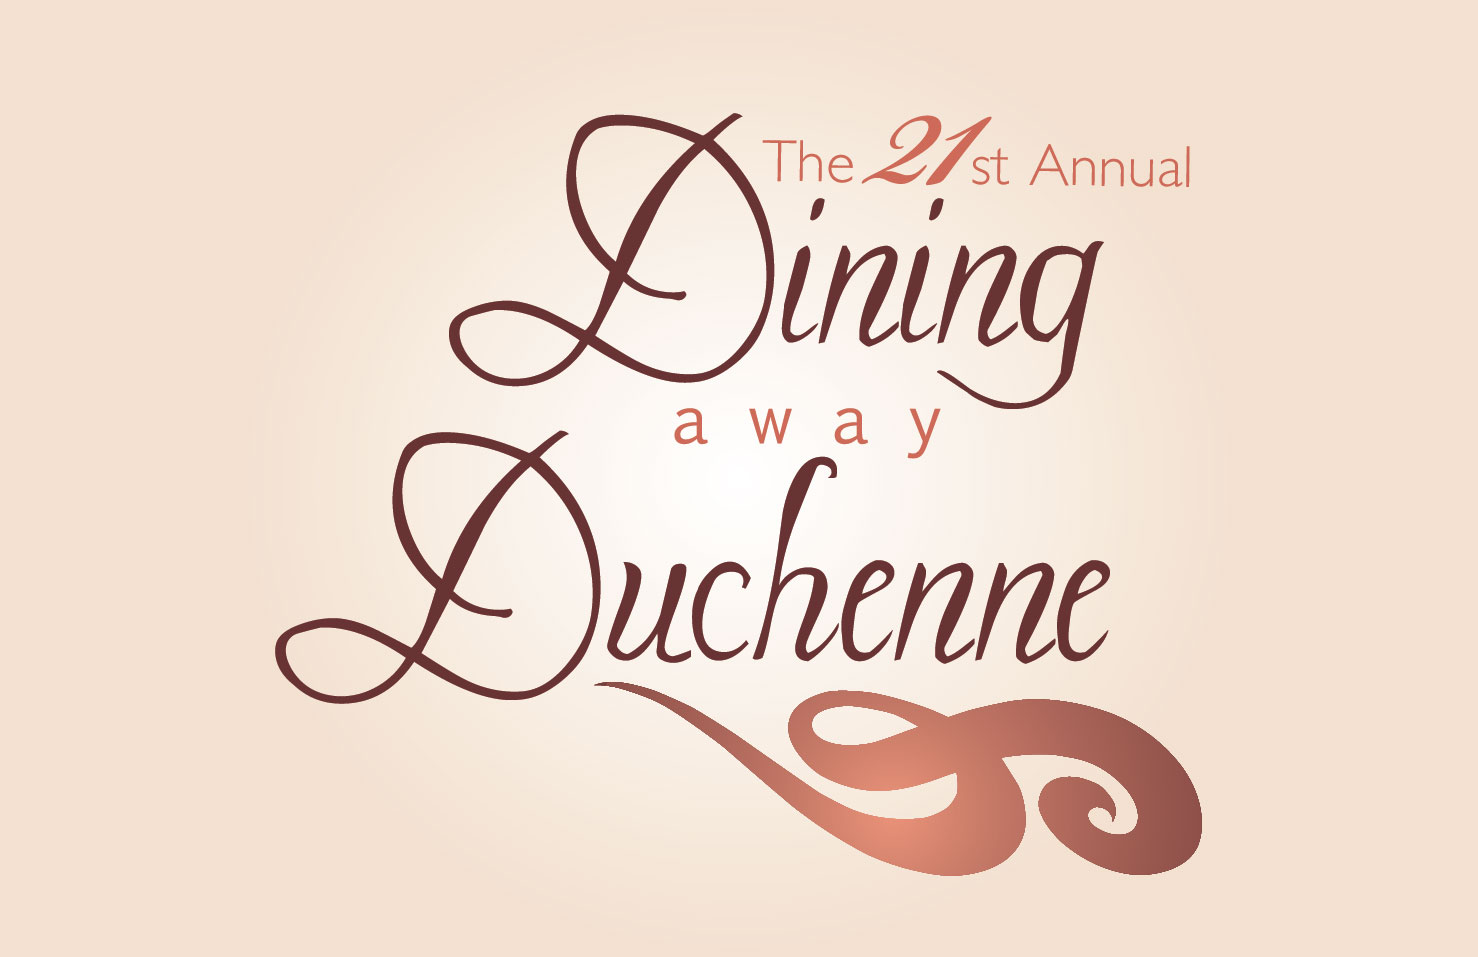 21st Annual Dining Away Duchenne